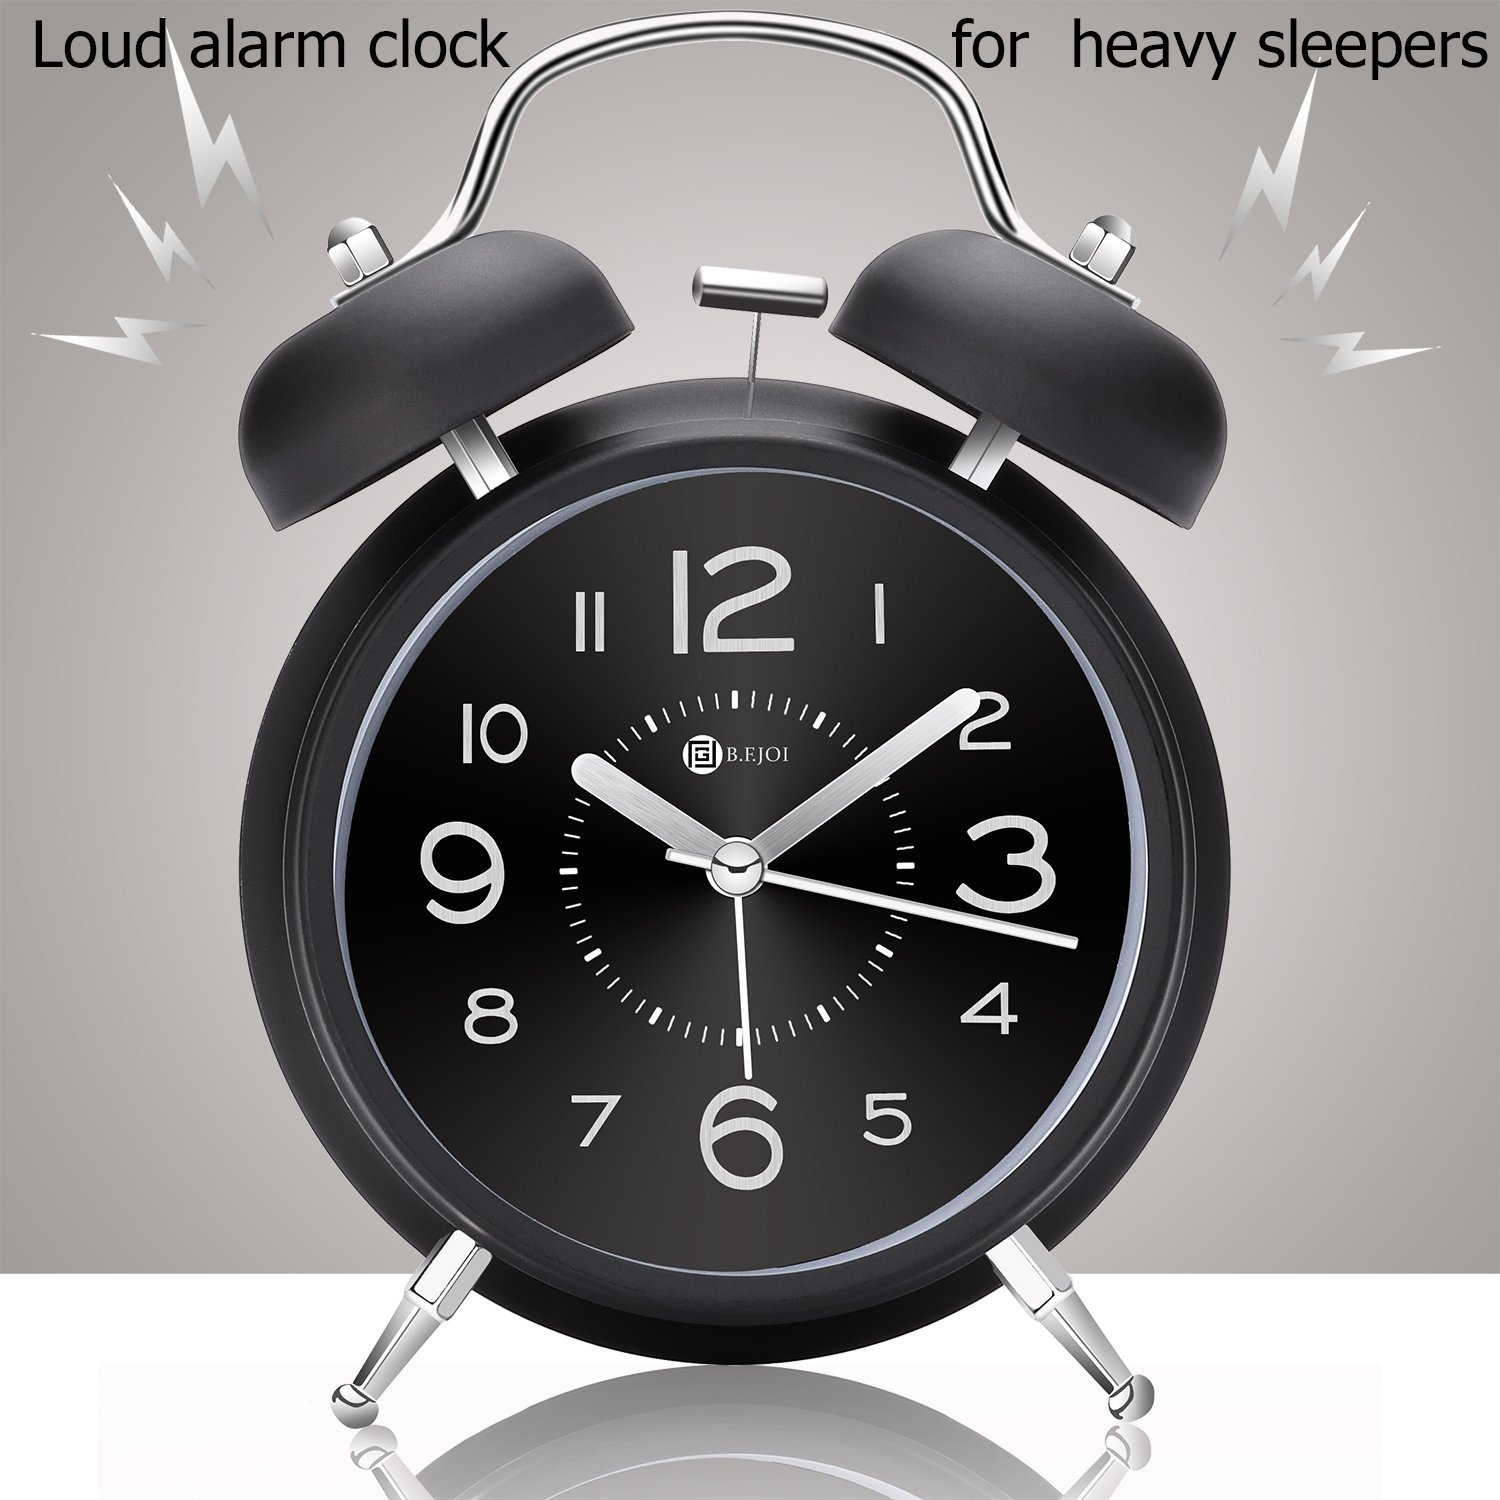 4'' Twin Bell Alarm Clock with Metal Dial, Nightlight, No Ticking Battery Operated Loud Alarm Clock for Bedroom (Black) by B.F.JOI (Image #5)